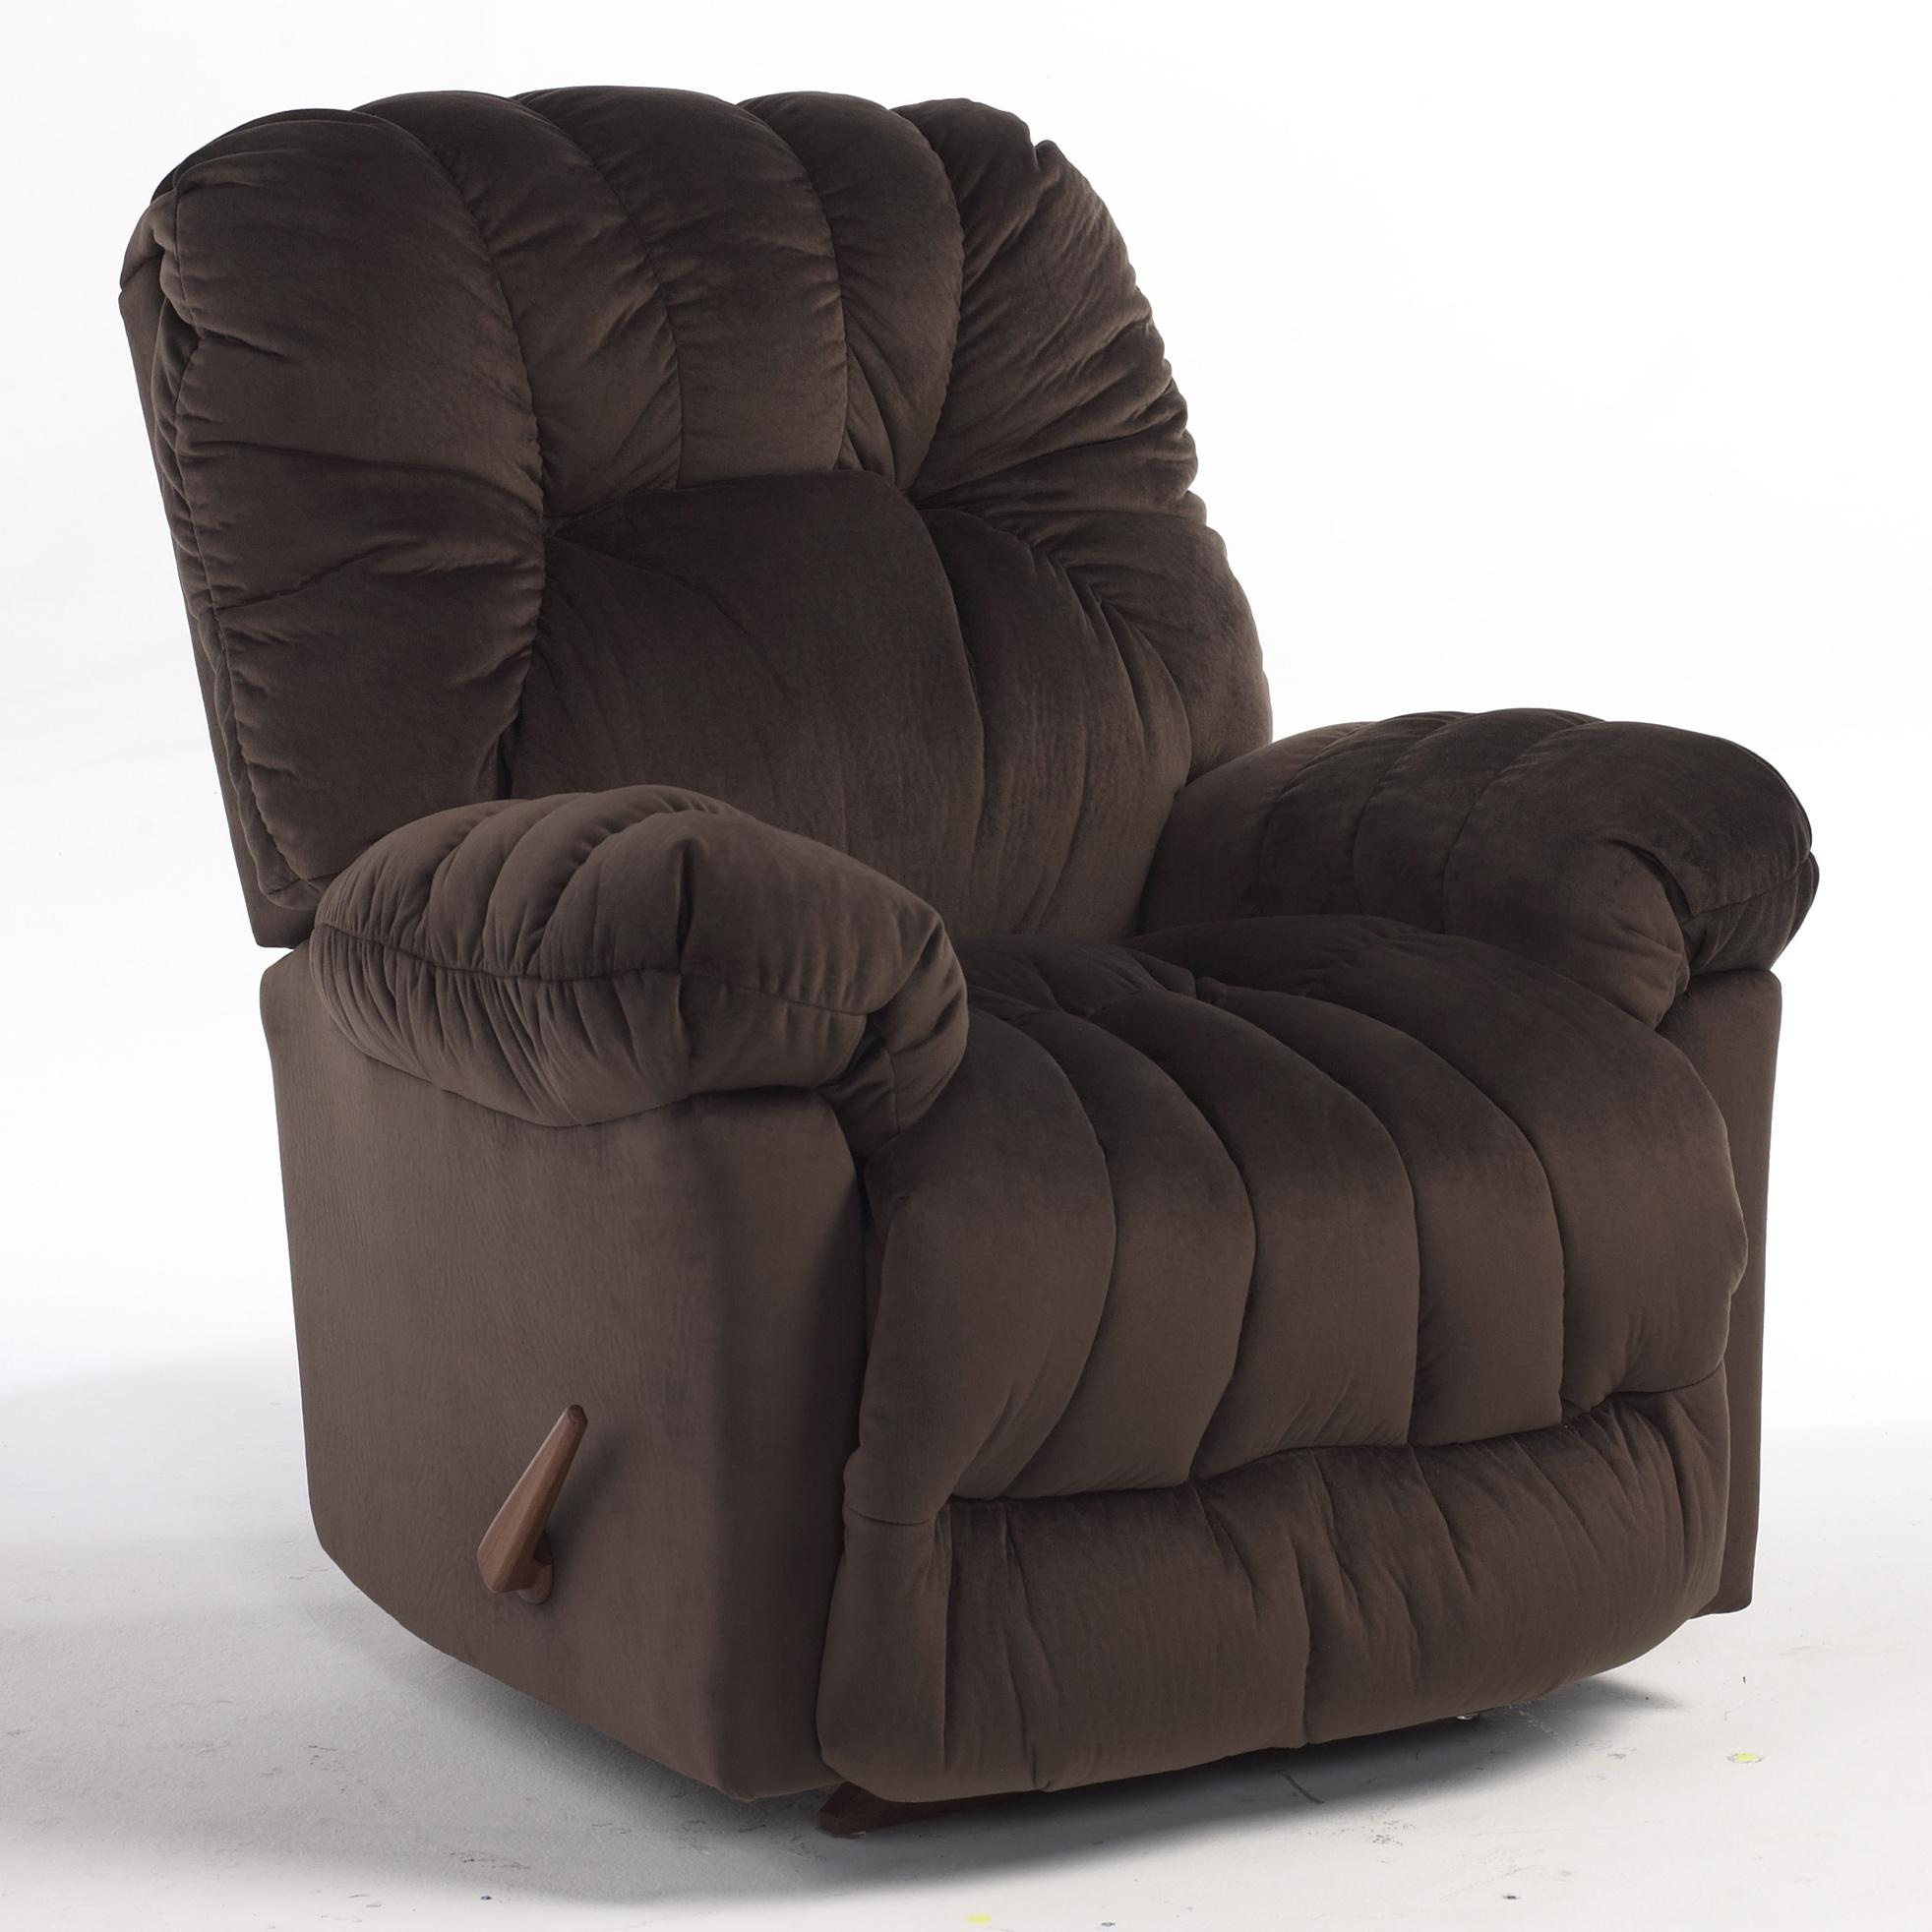 Recliners Medium Conen Swivel Rocking Reclining Chair By